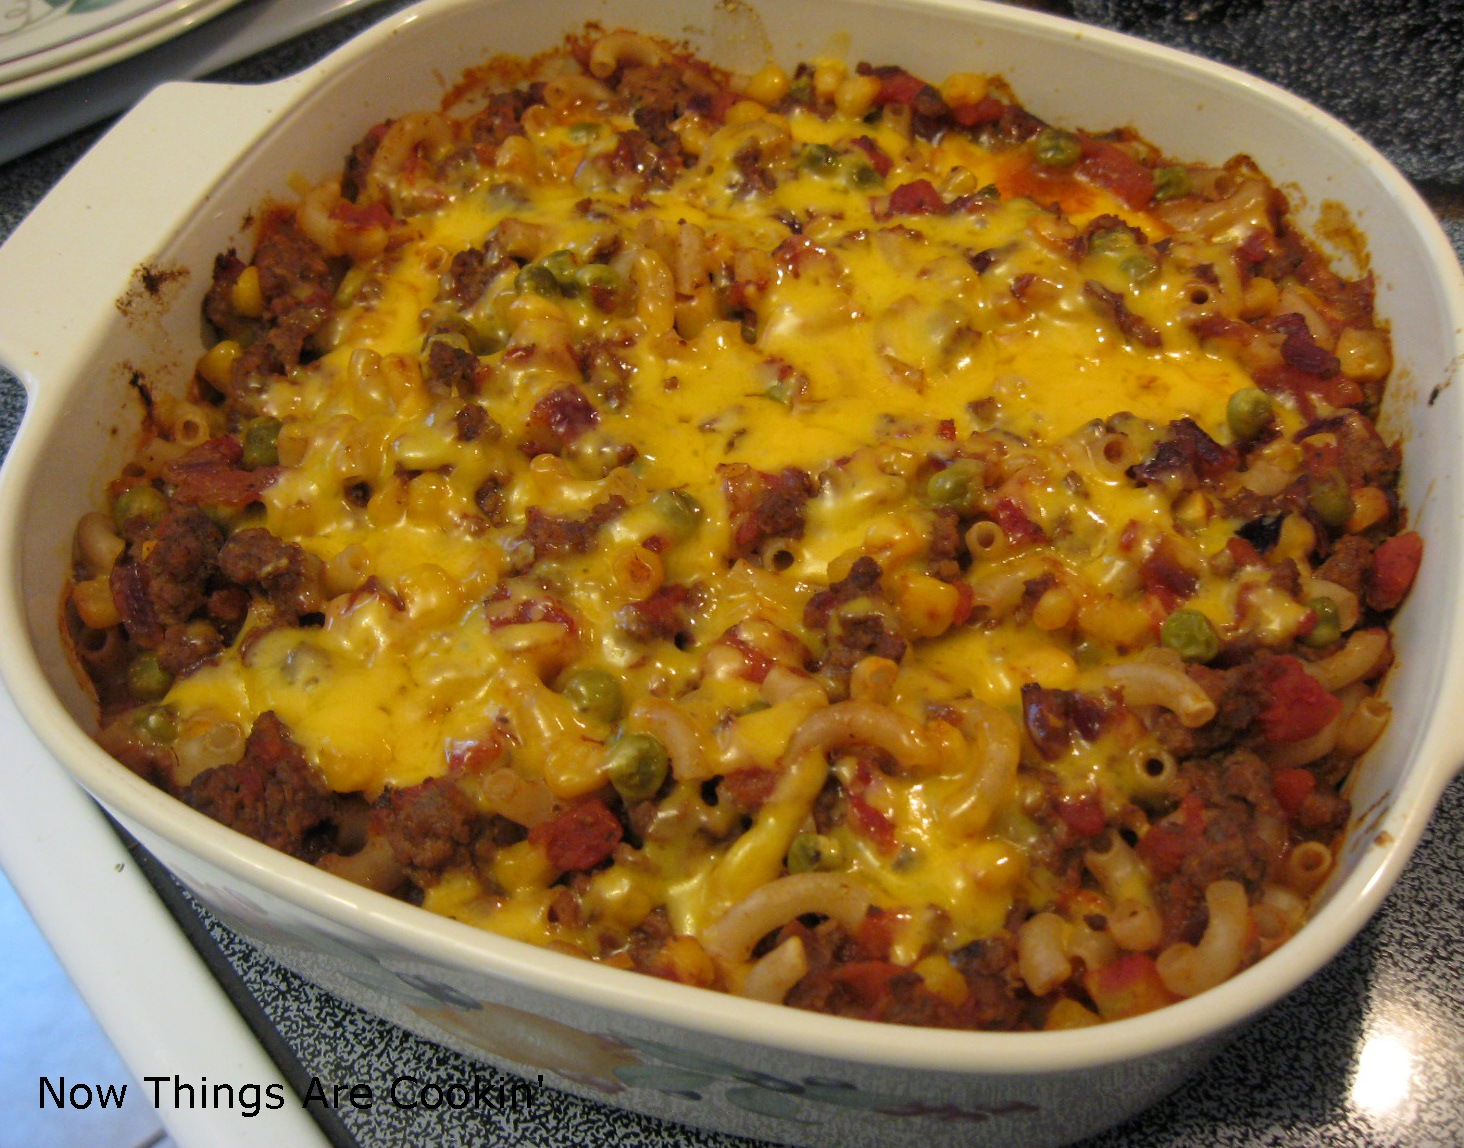 ... ': Making the Best of Things - Hamburger Macaroni Casserole - Recipe